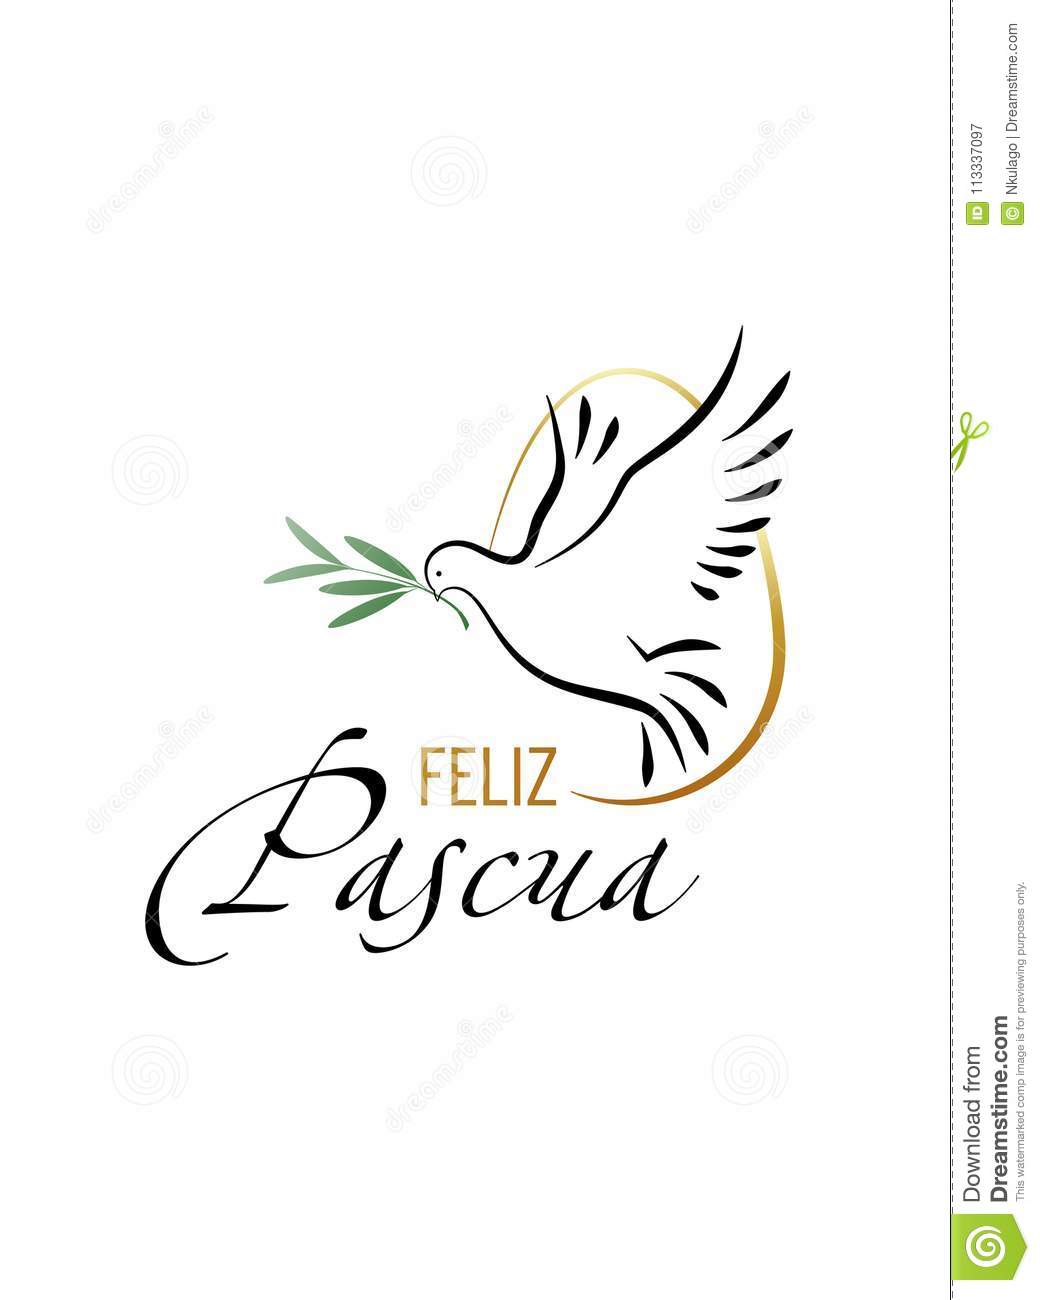 Happy Easter. Elegant inscription `Happy Easter` in spanish language with Dove and Olive branch.